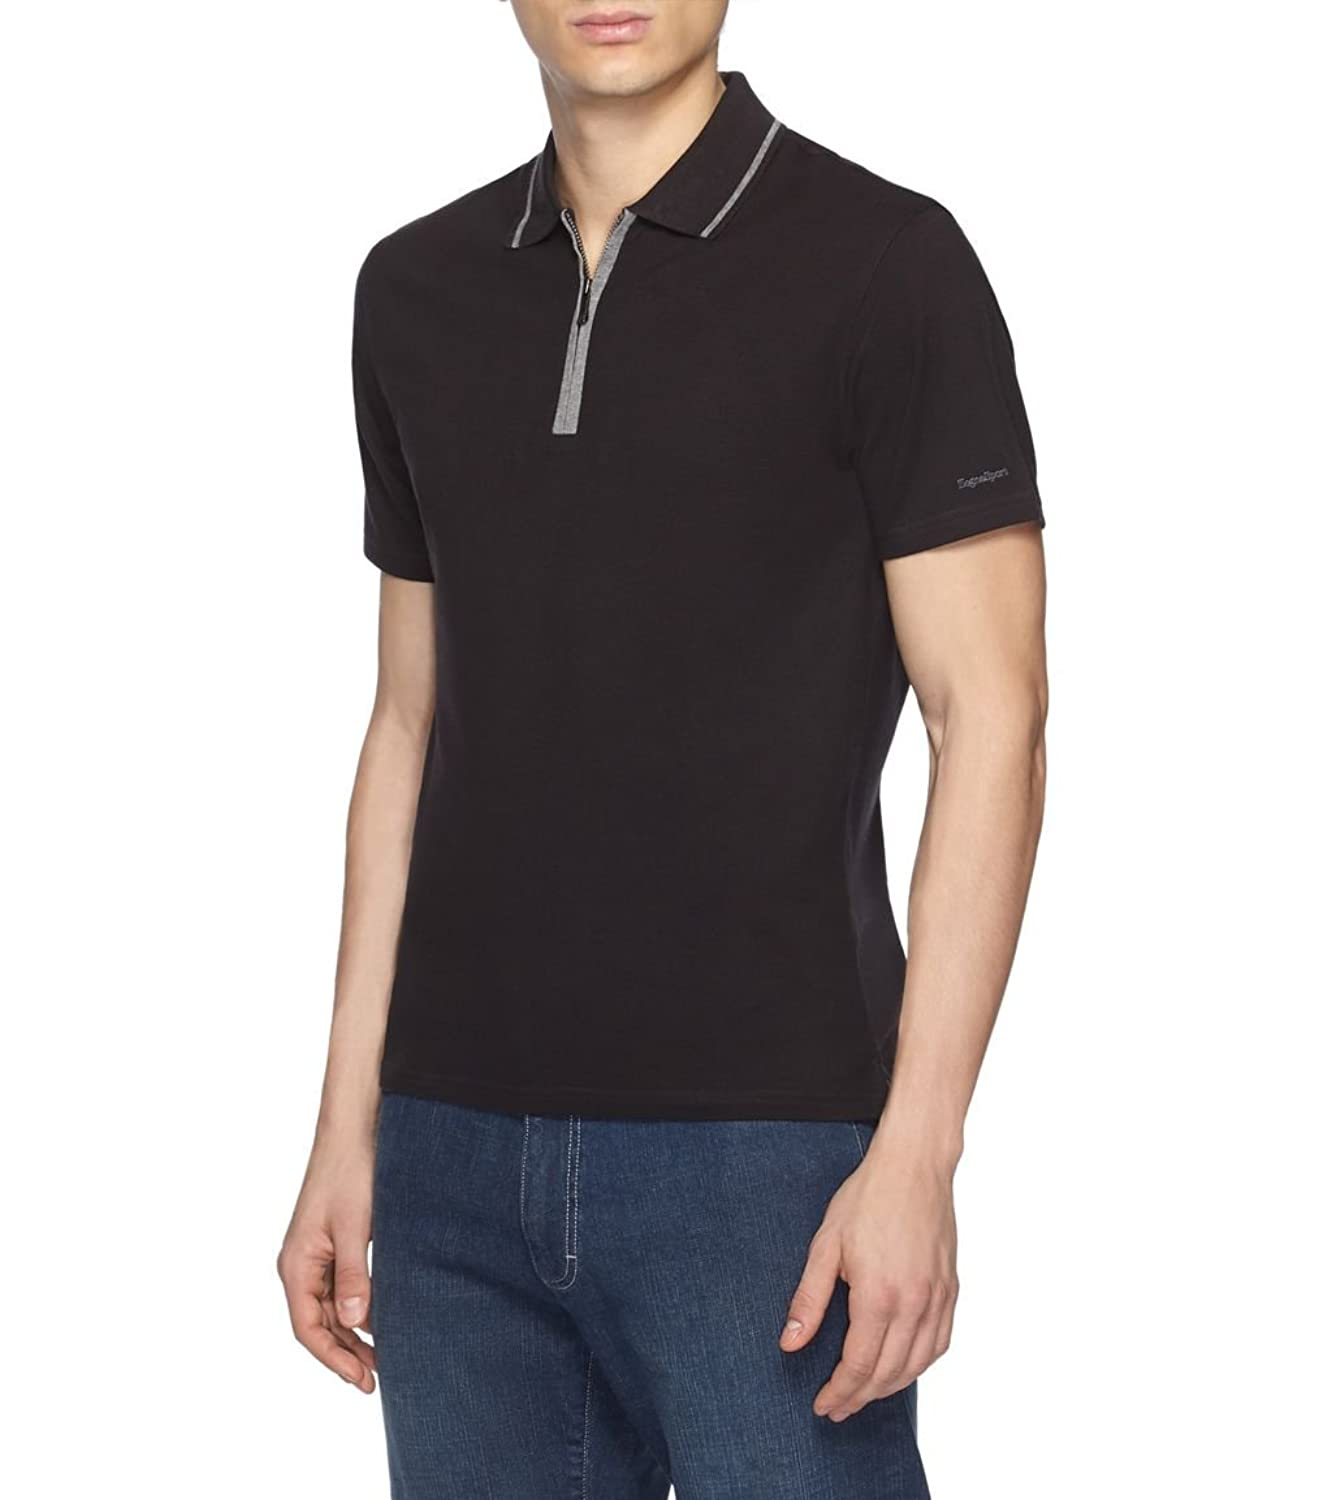 все цены на Zegna Sport Men's Black Zip Polo Stretch Cotton T-shirt в интернете